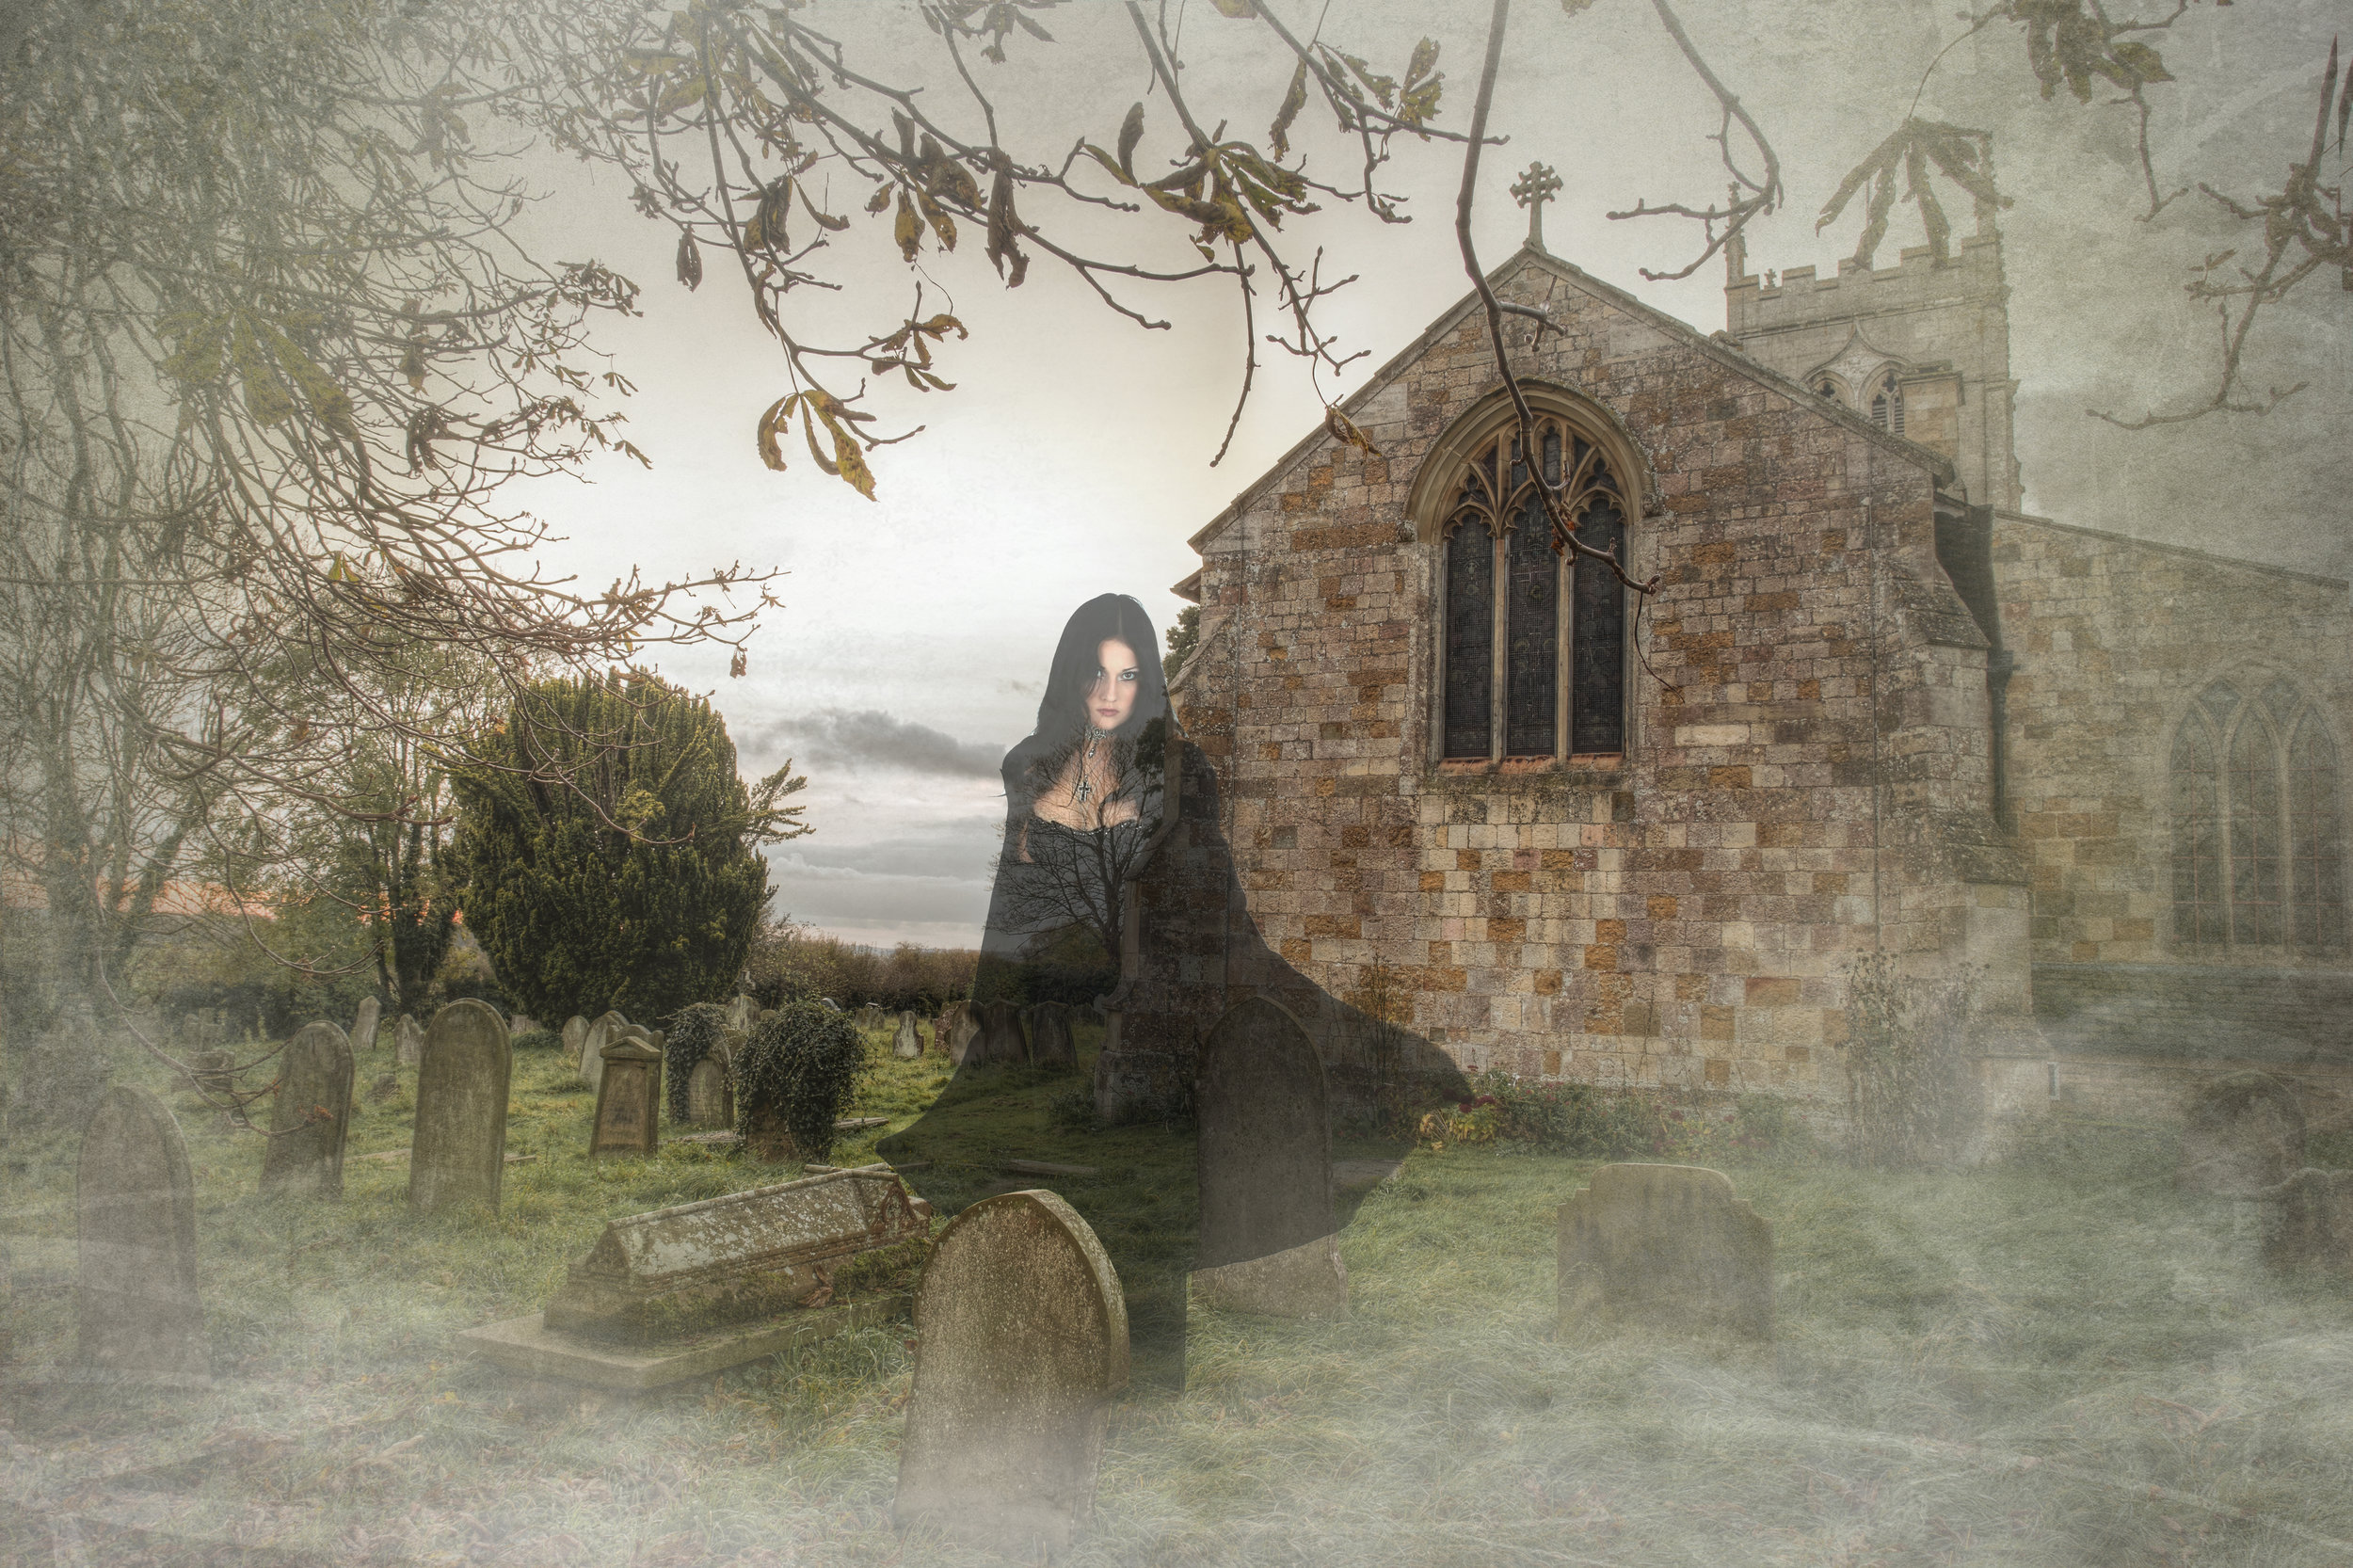 witch in grave yard.jpg